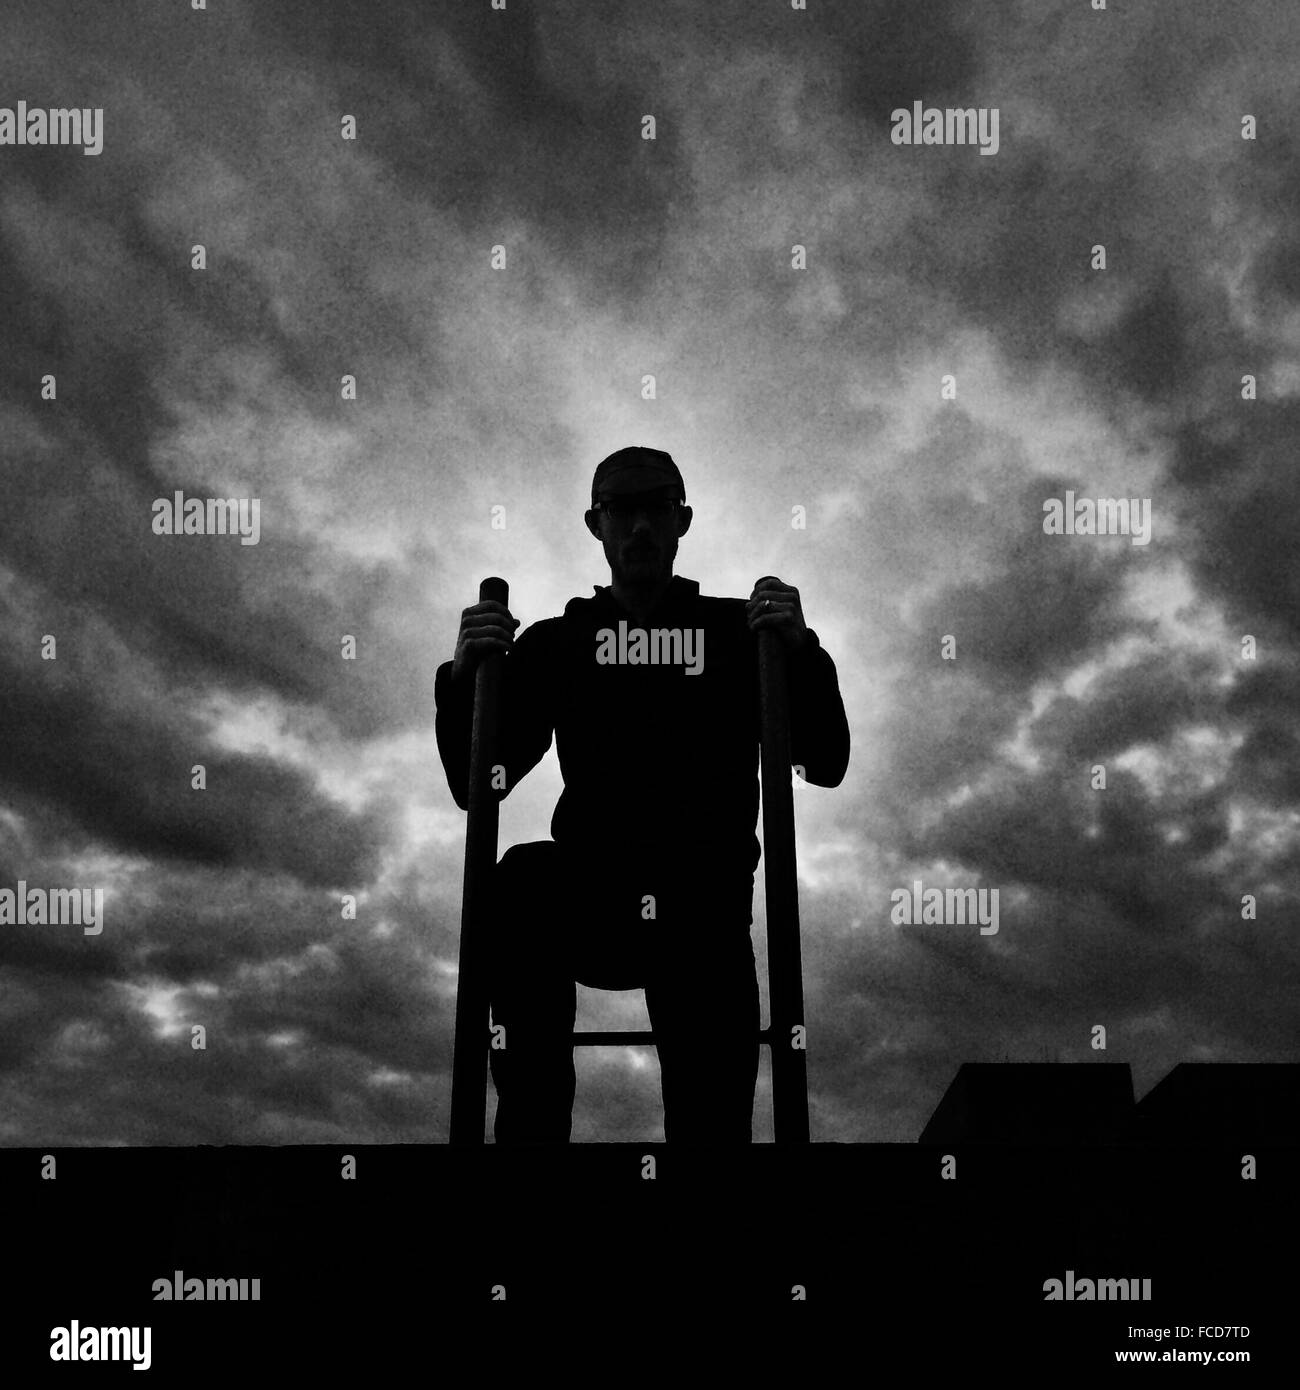 Man On The Roof Of A Building - Stock Image